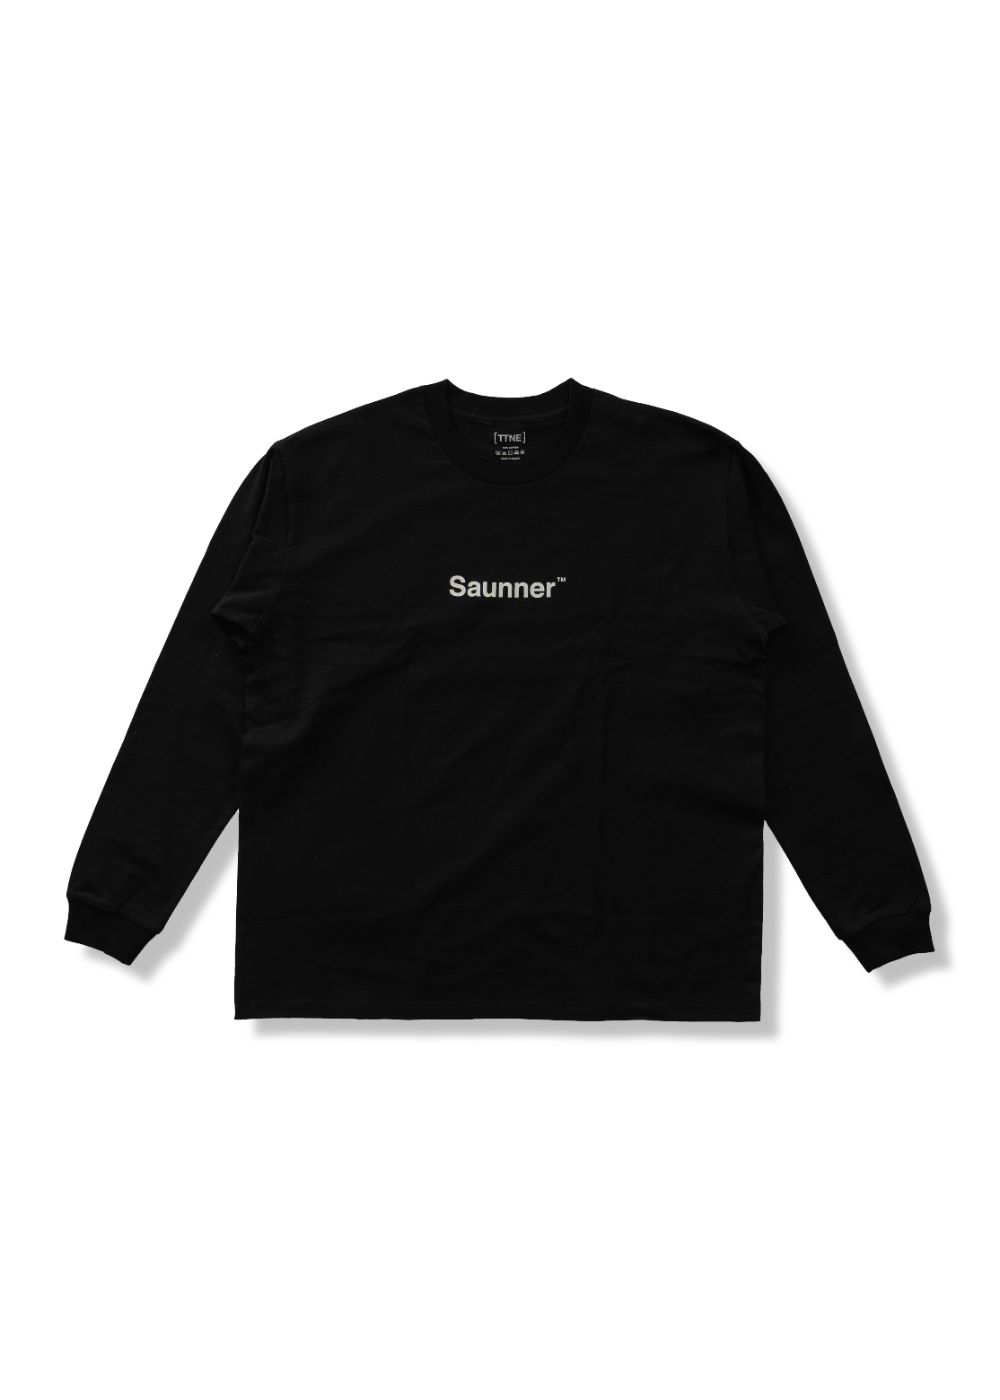 Saunner ™ Logo Long Sleeve Tee - Black